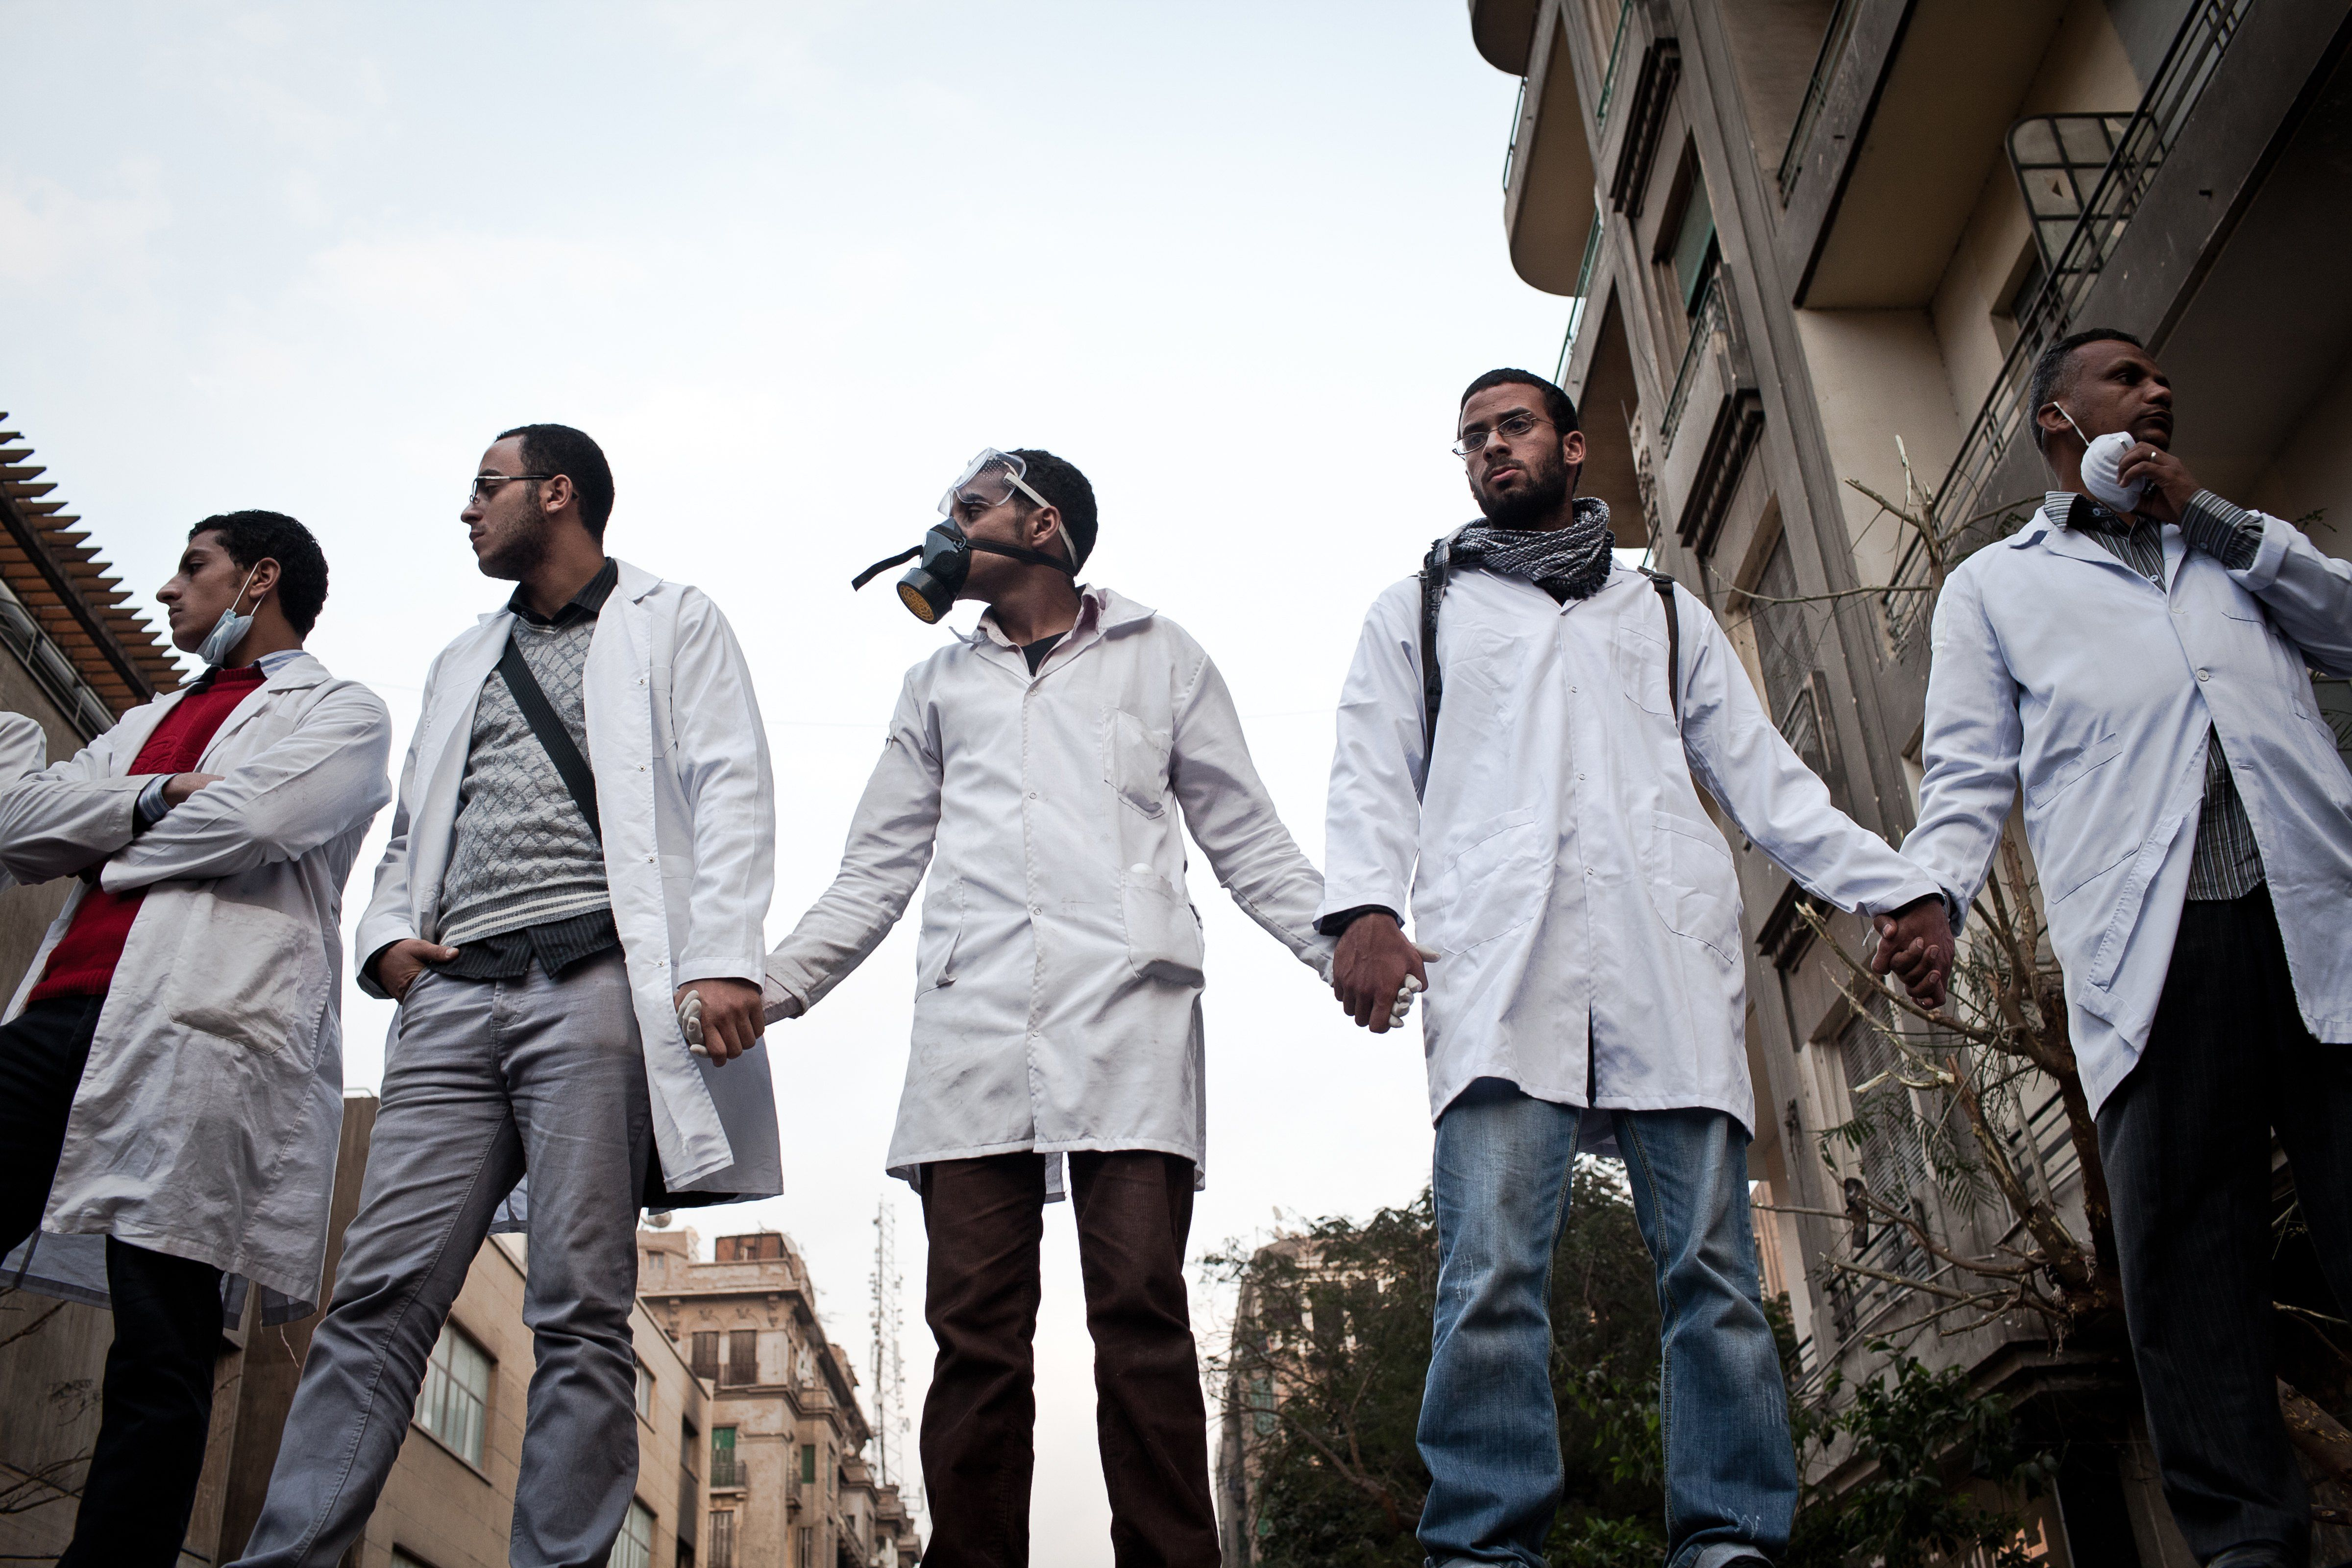 Medical volunteers during the Arab Spring, 2011 in Tahrir Square, Cairo, Egypt